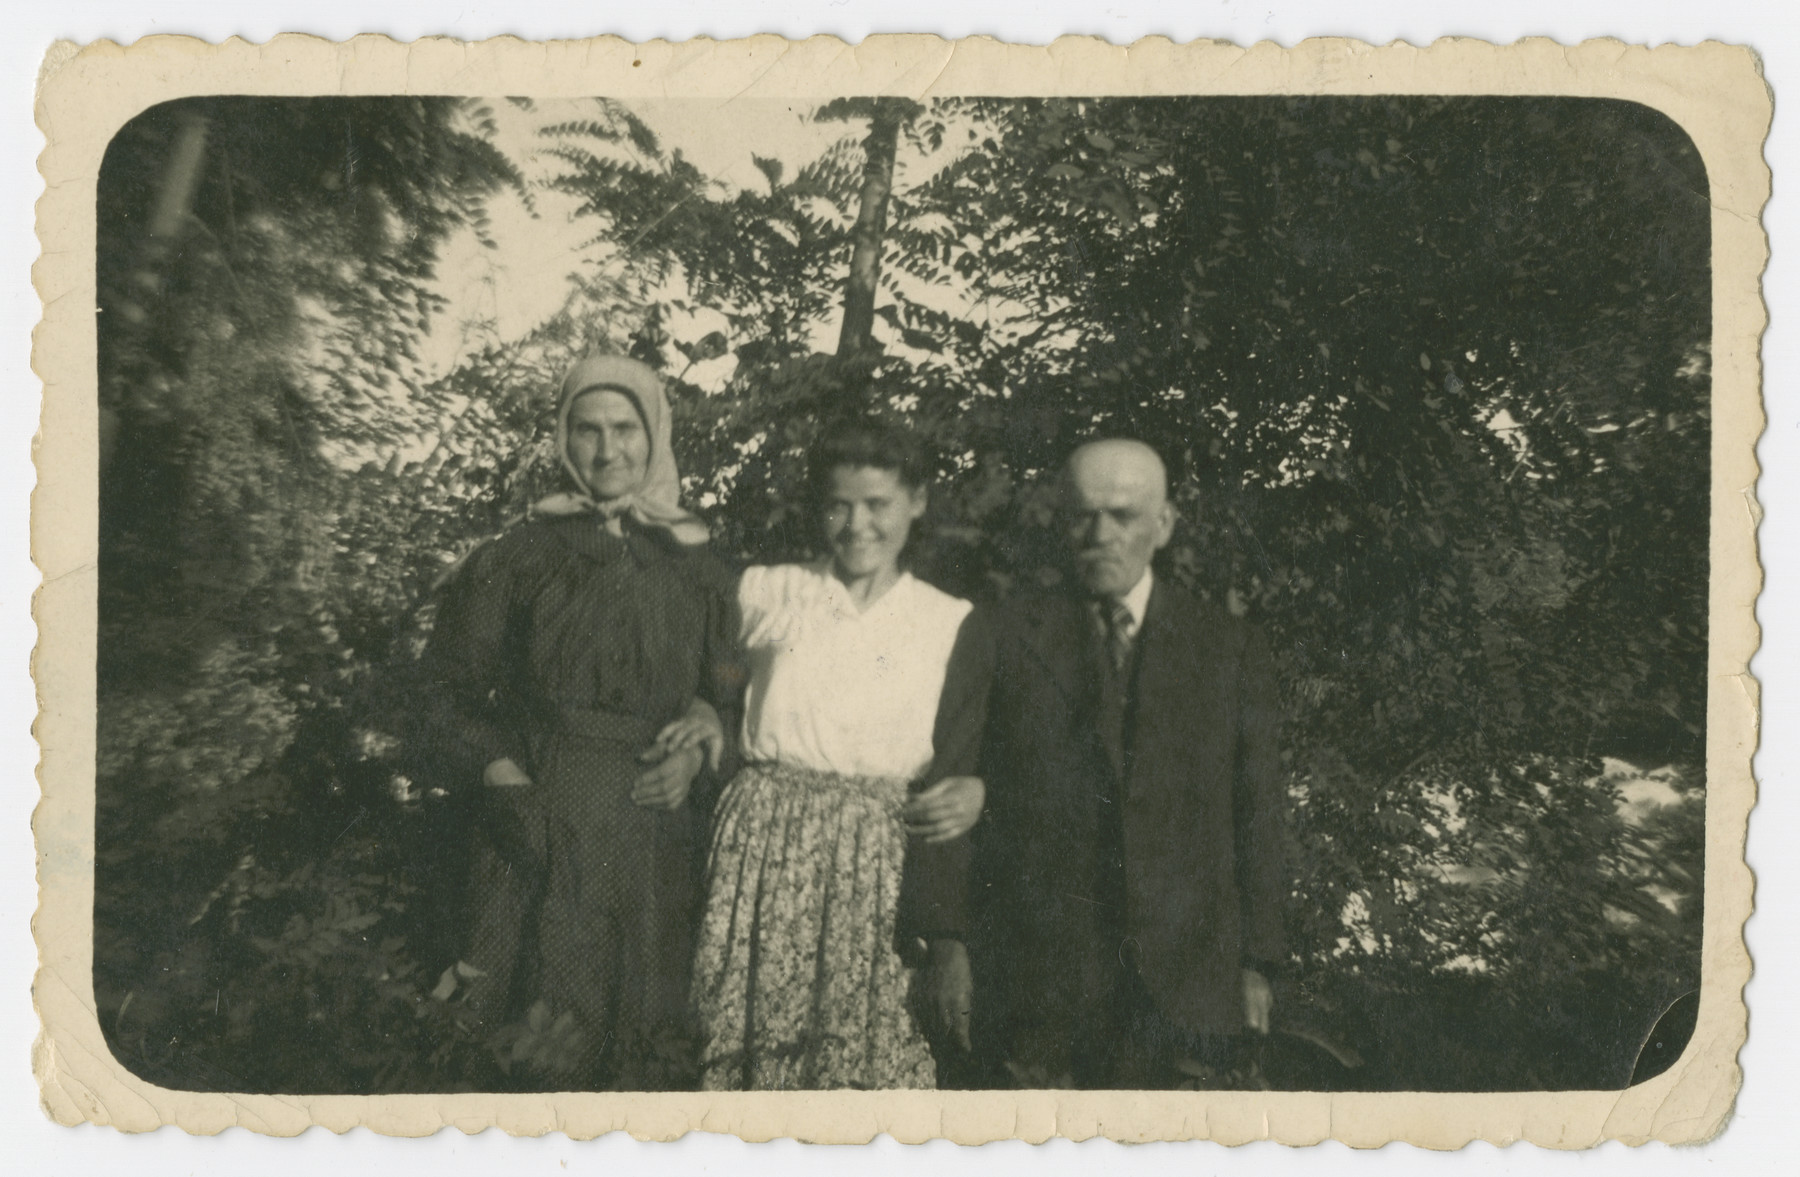 Group portrait of the Klein family.  From left to right are Cecilia, Friderika and Lajos Klein.